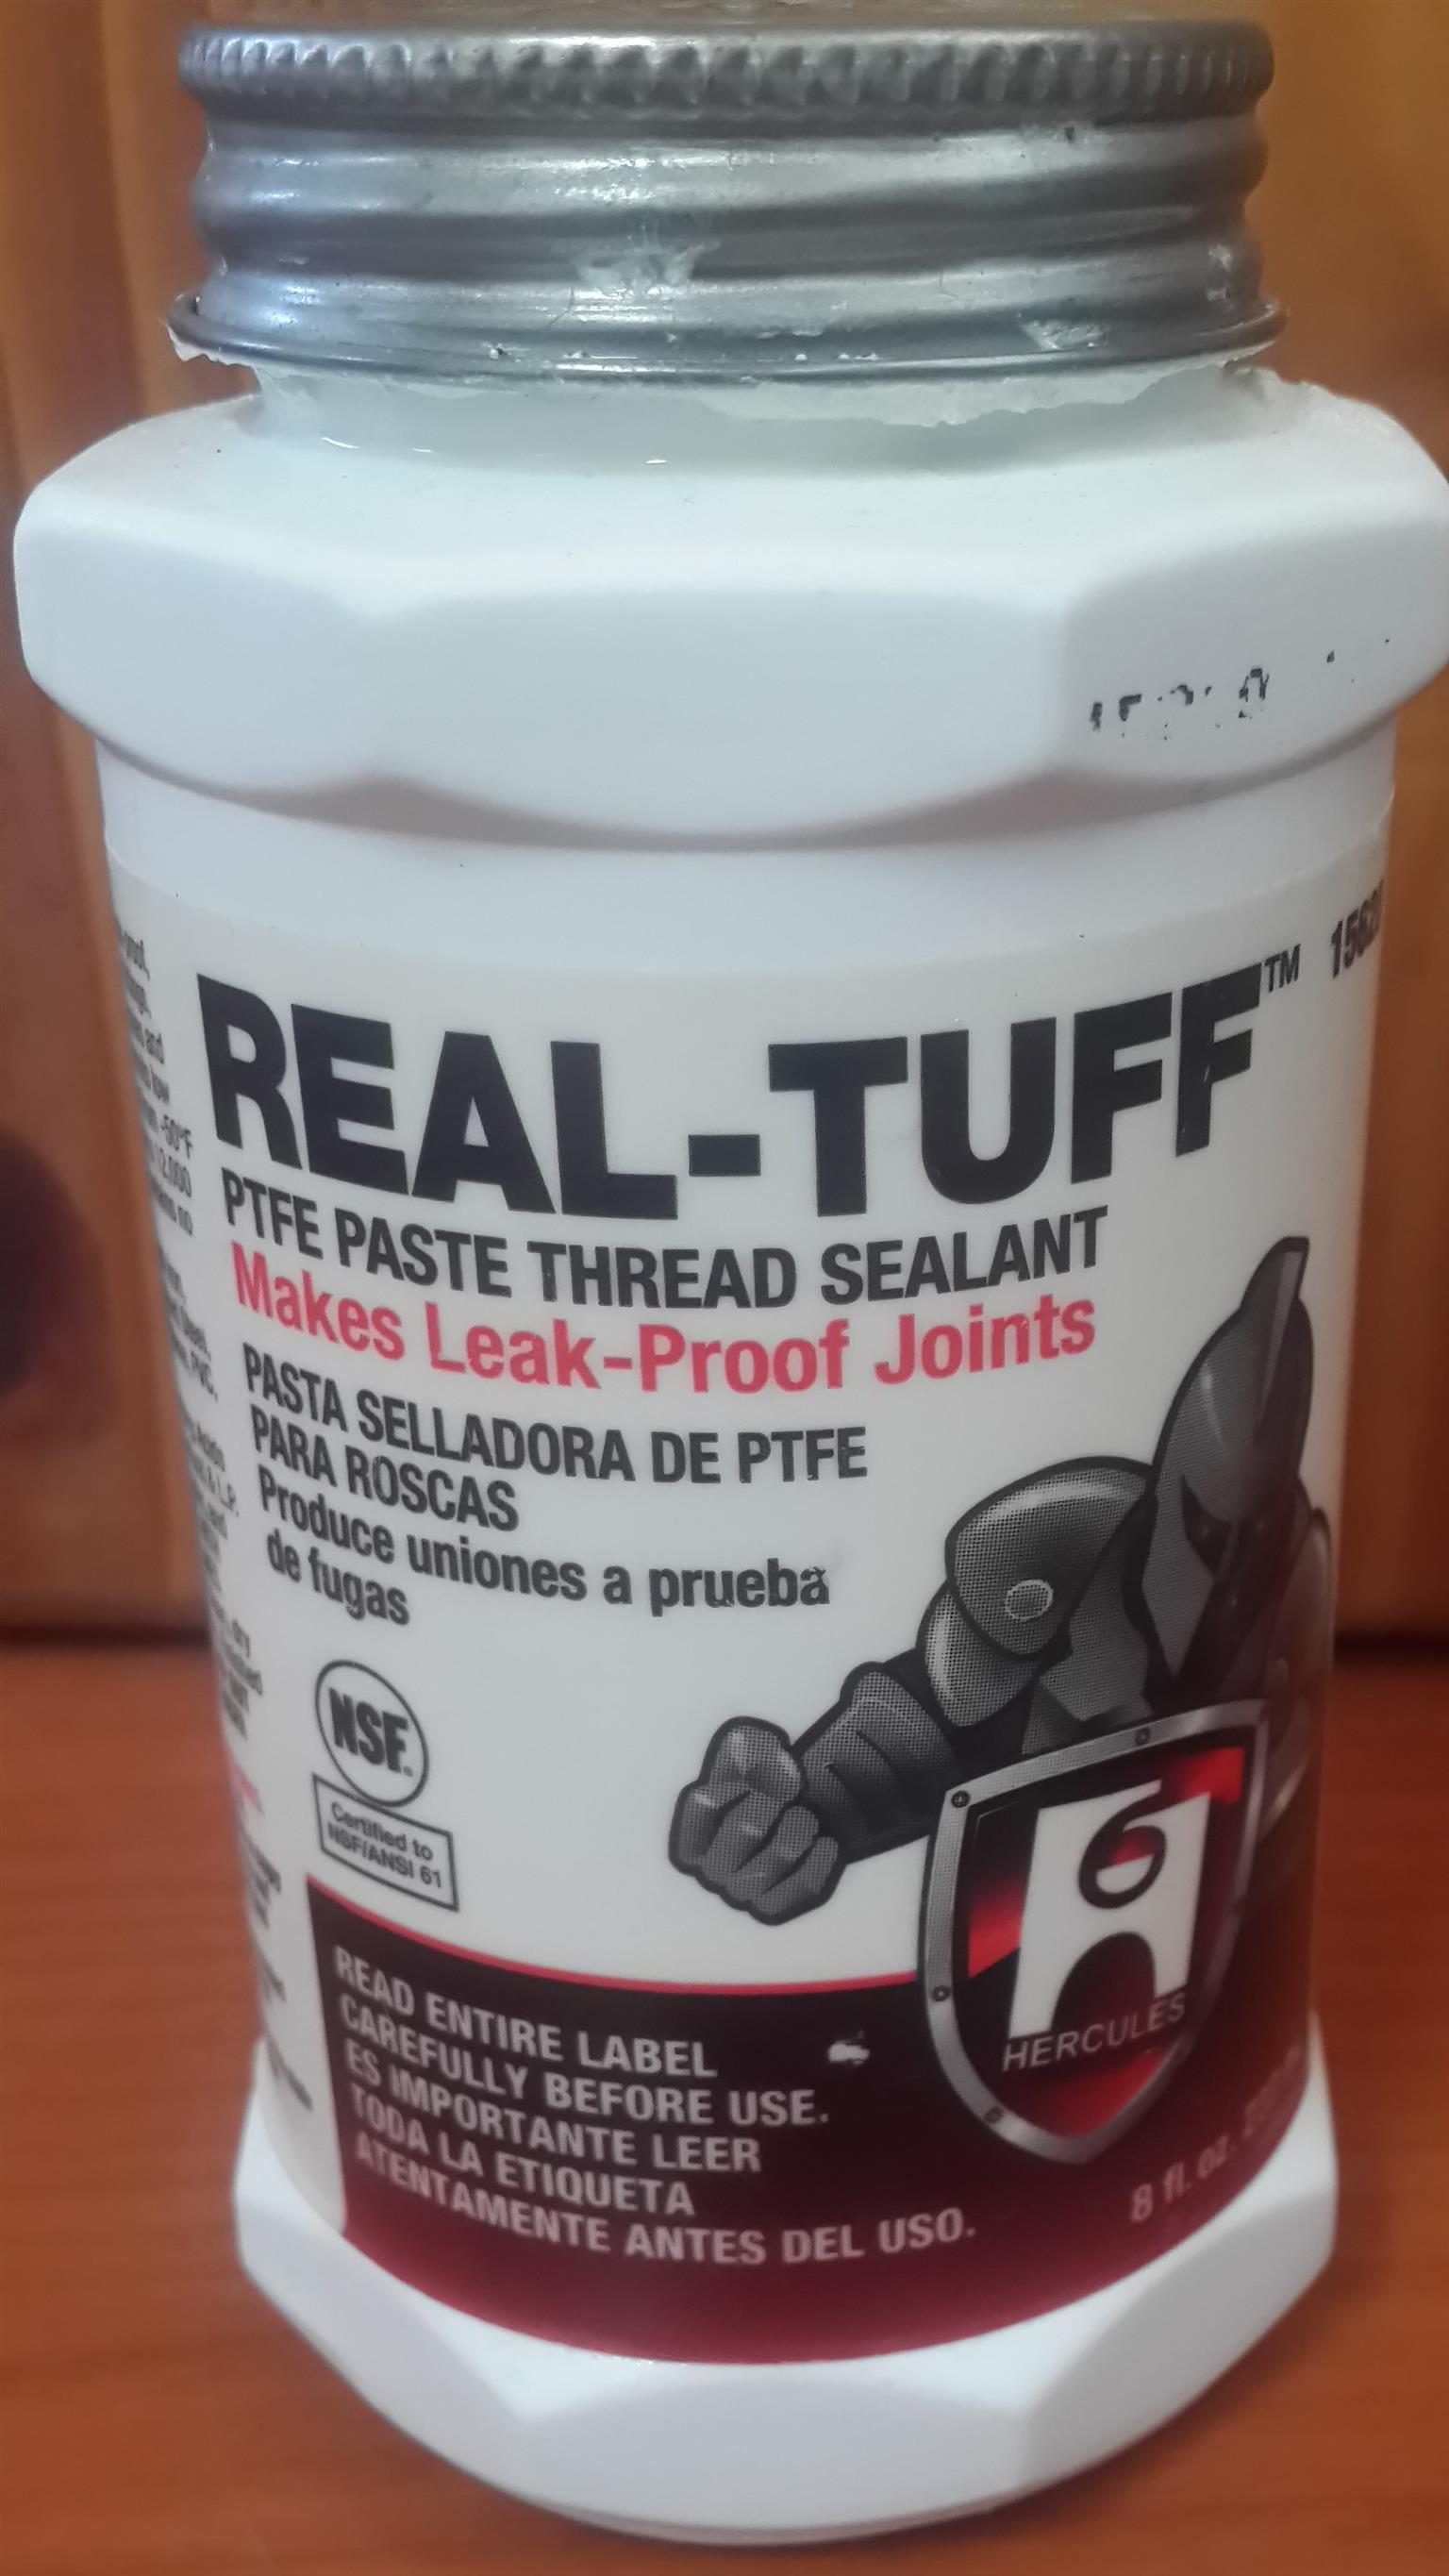 REAL-TUFF Makes leak-proof joints